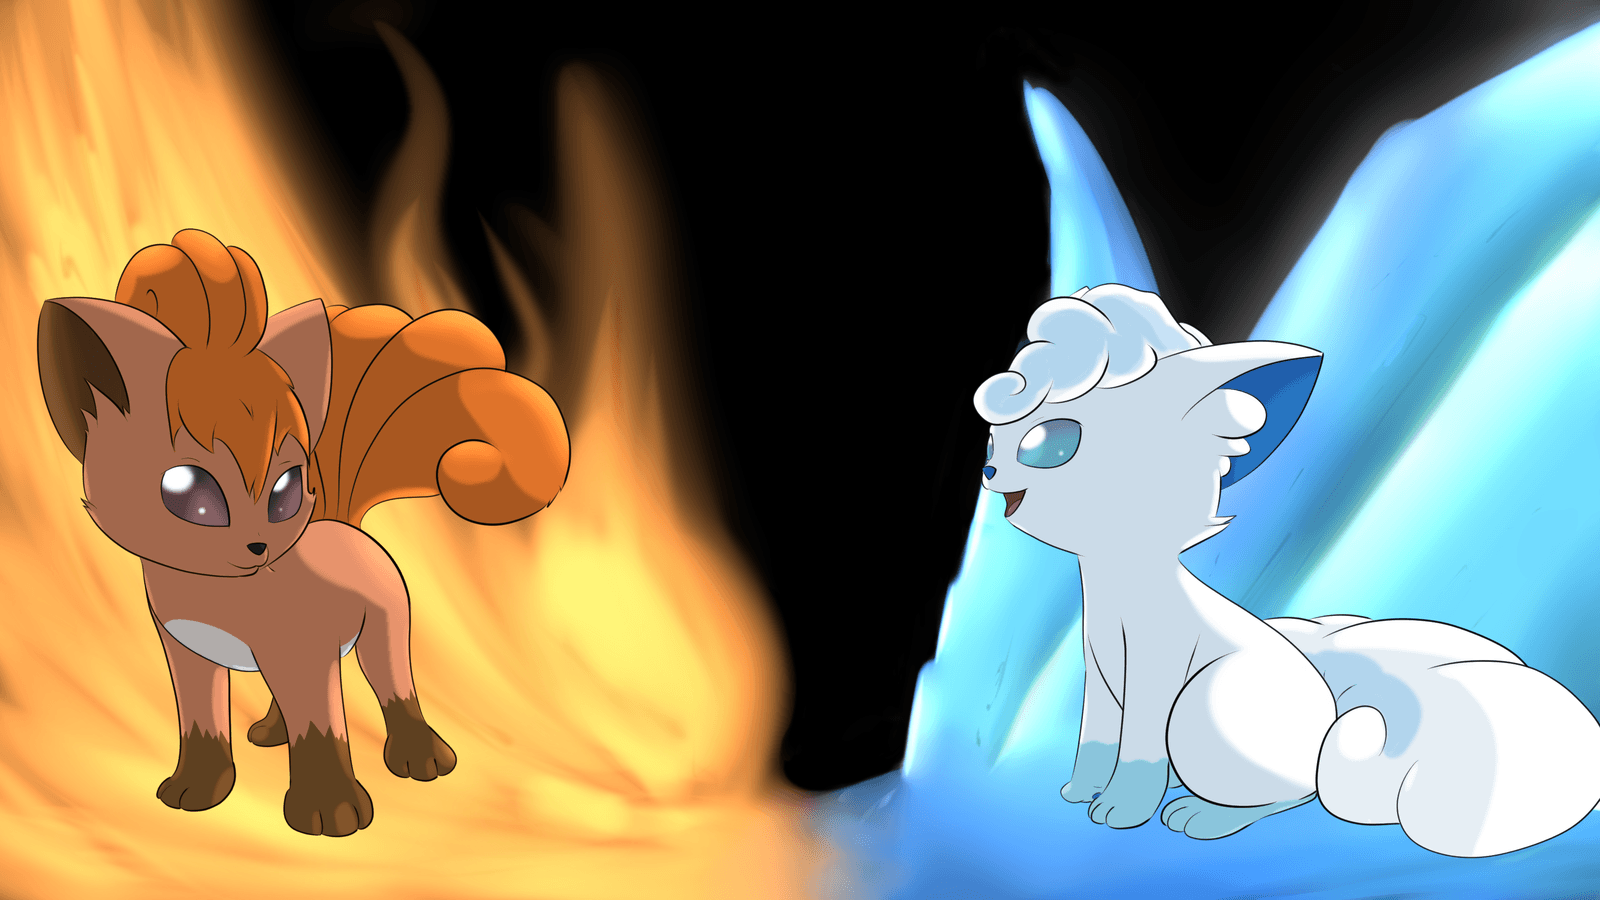 Vulpix fire and ice wallpaper by JollyThinker on DeviantArt